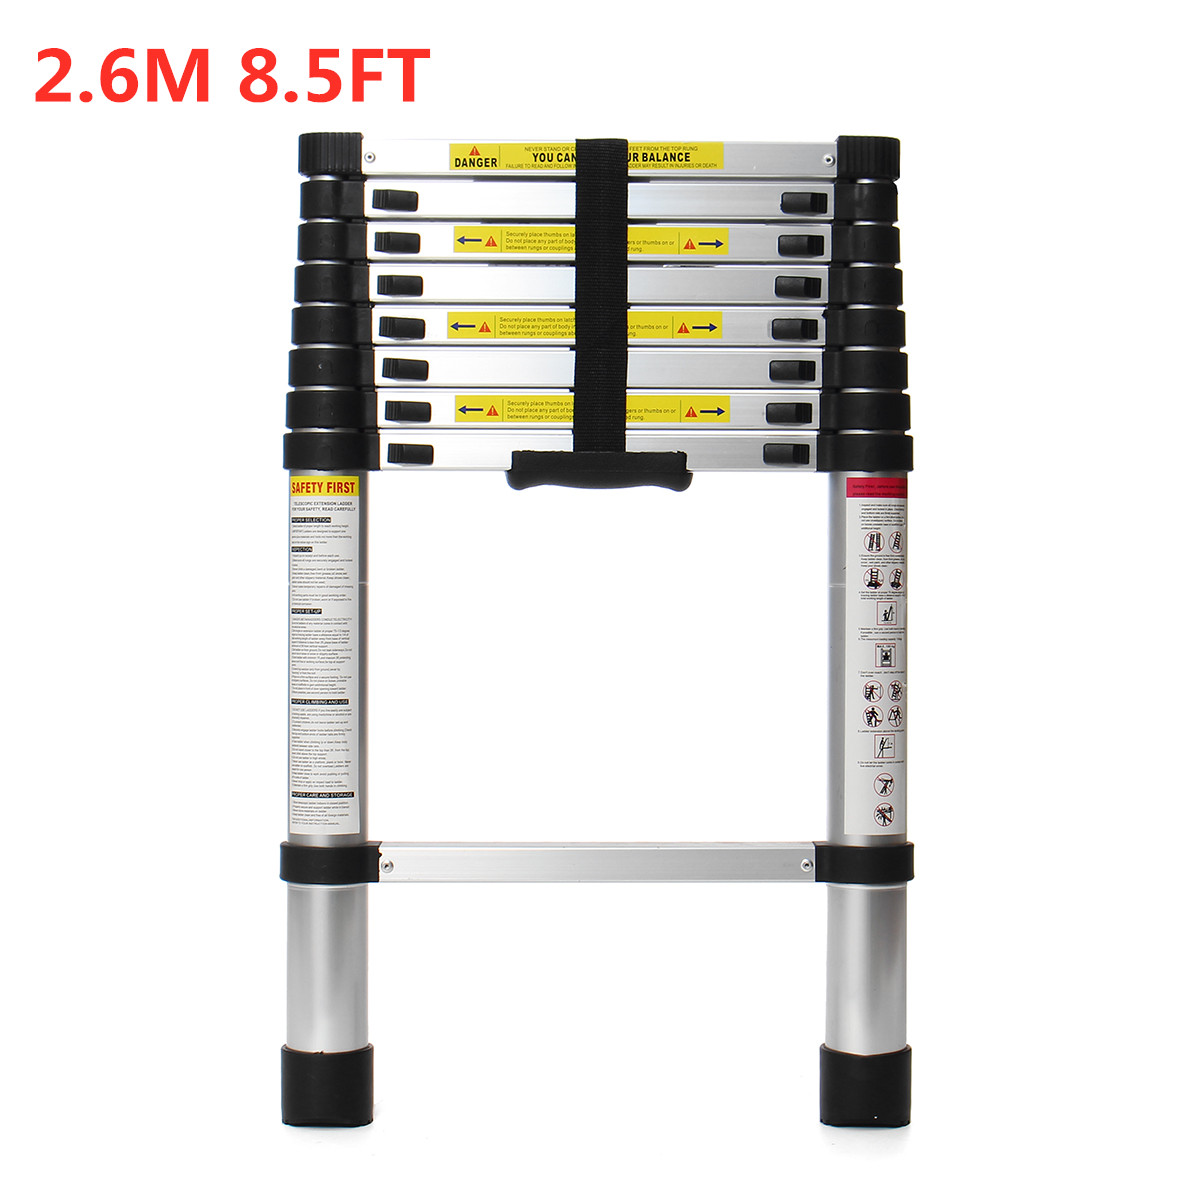 8.5Ft 2.6m Multi-Purpose Telescopic Ladder Aluminium Telescoping Ladders Folding Single Extension Step With Locking Tool